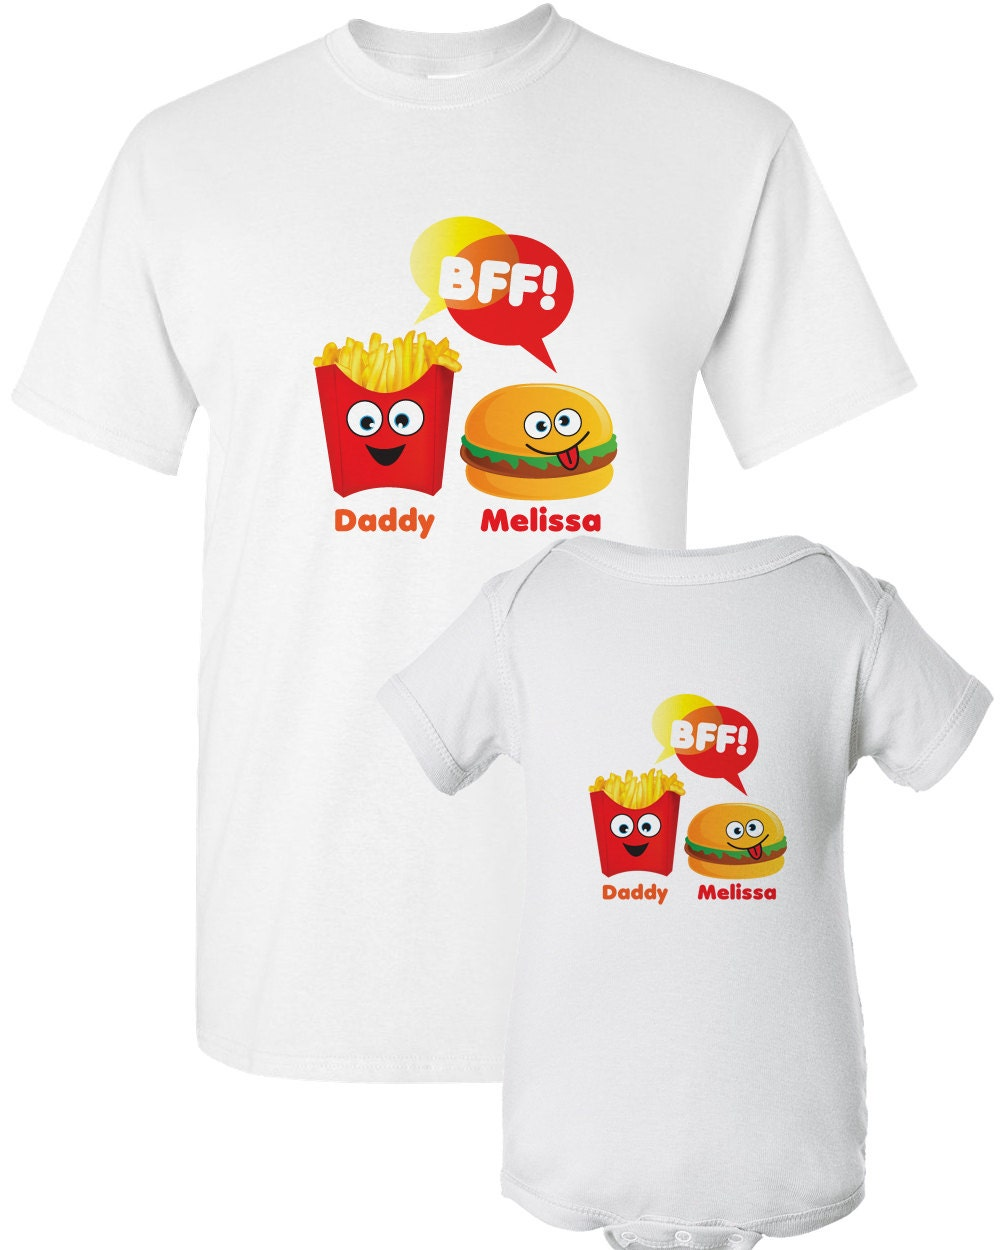 Daddy Shirt Set Dad and Son Shirts Matching Father Son